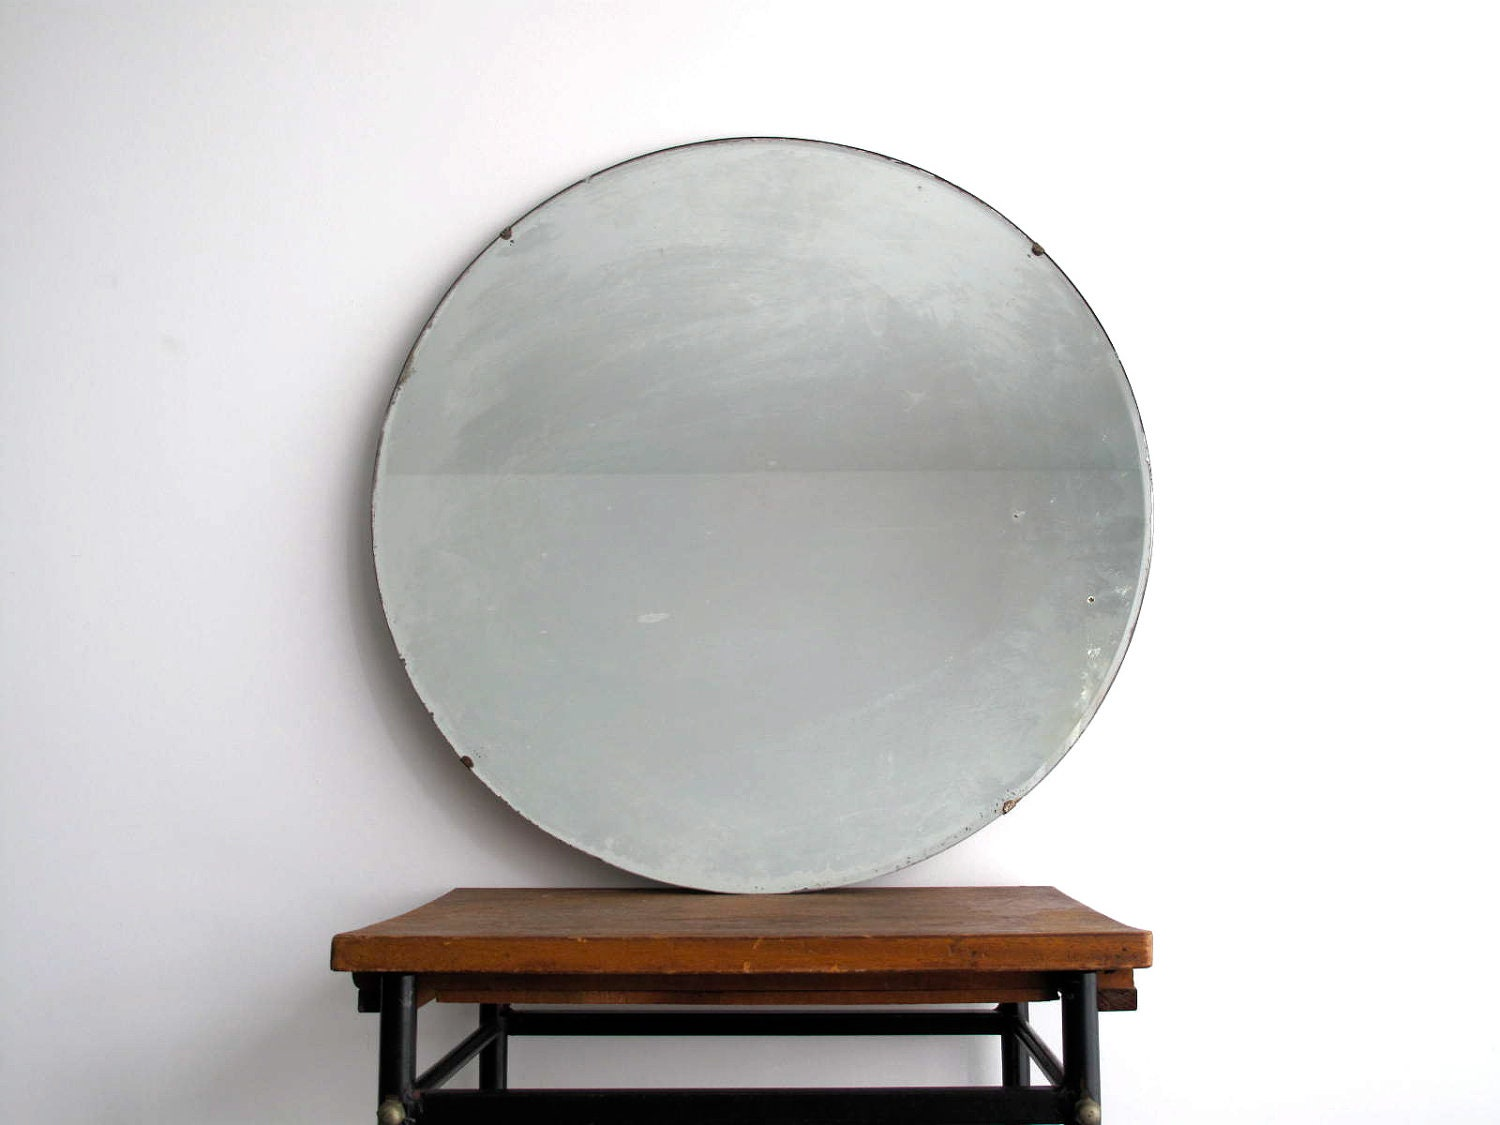 Vintage wall mirror round beveled frameless by snapshotvintage for Frameless beveled mirror